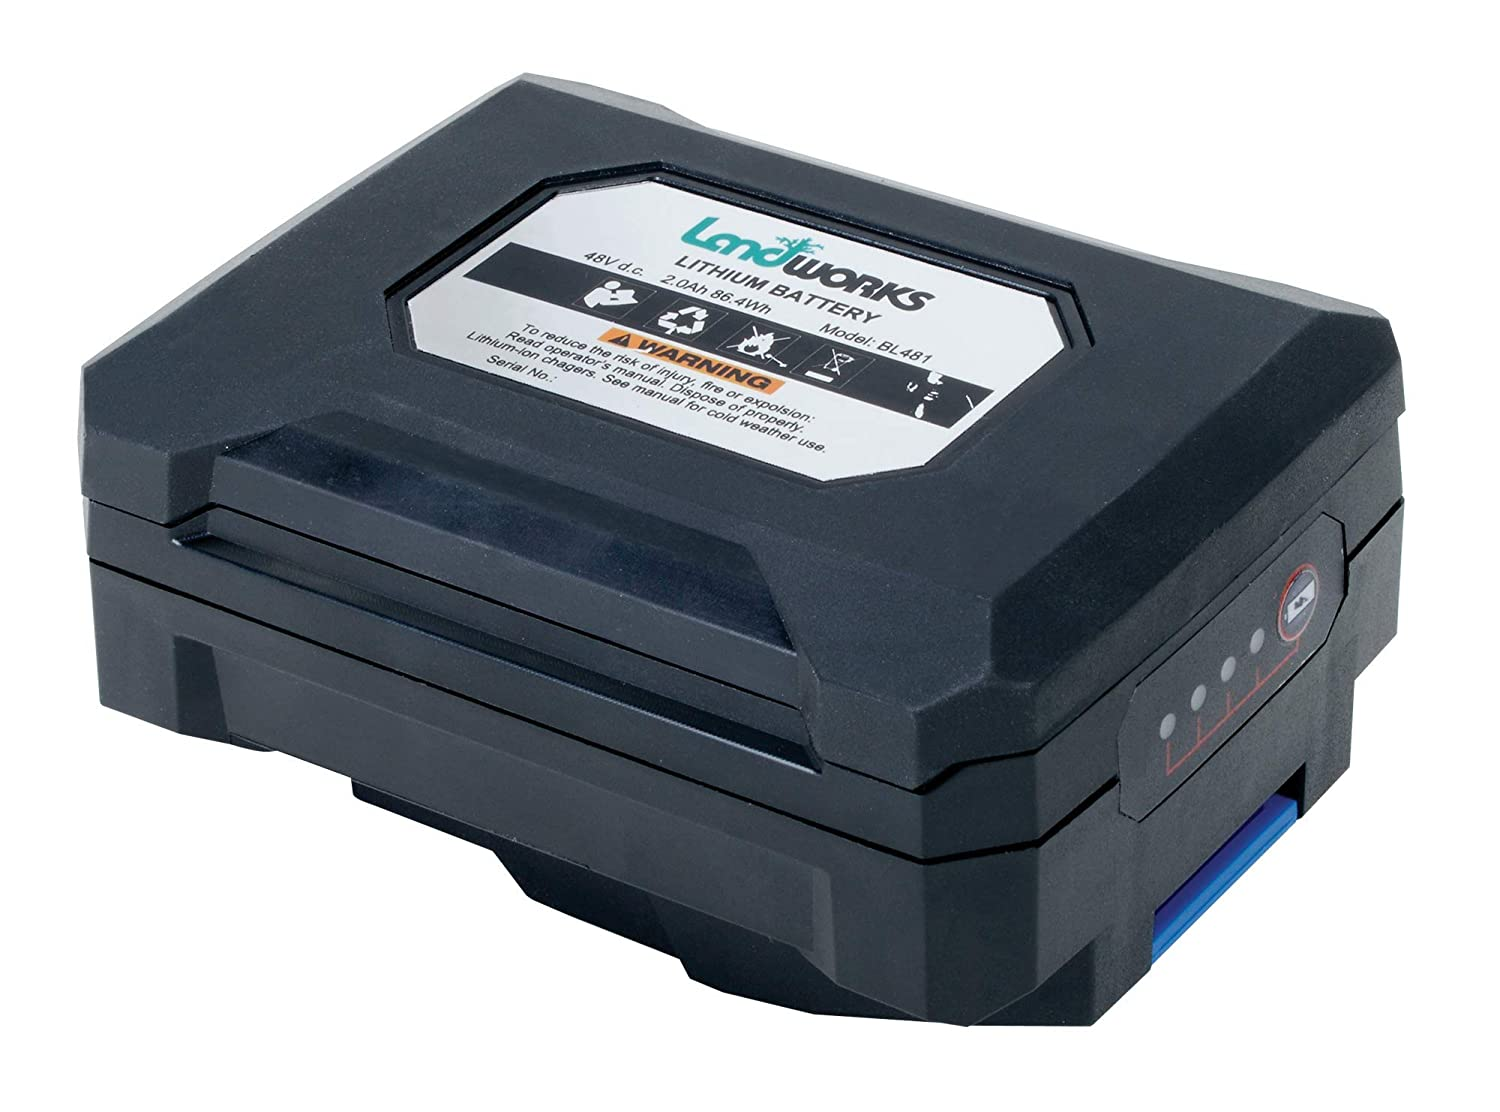 Landworks Heavy Duty Pro Lithium Ion Battery Charger 100-240V AC 50/60Hz 2.5A (Charger ONLY) (for Landworks 2Ah/4Ah Batteries to Power Landworks 48V Earth/Ice Auger Power Head [Both NOT Included])